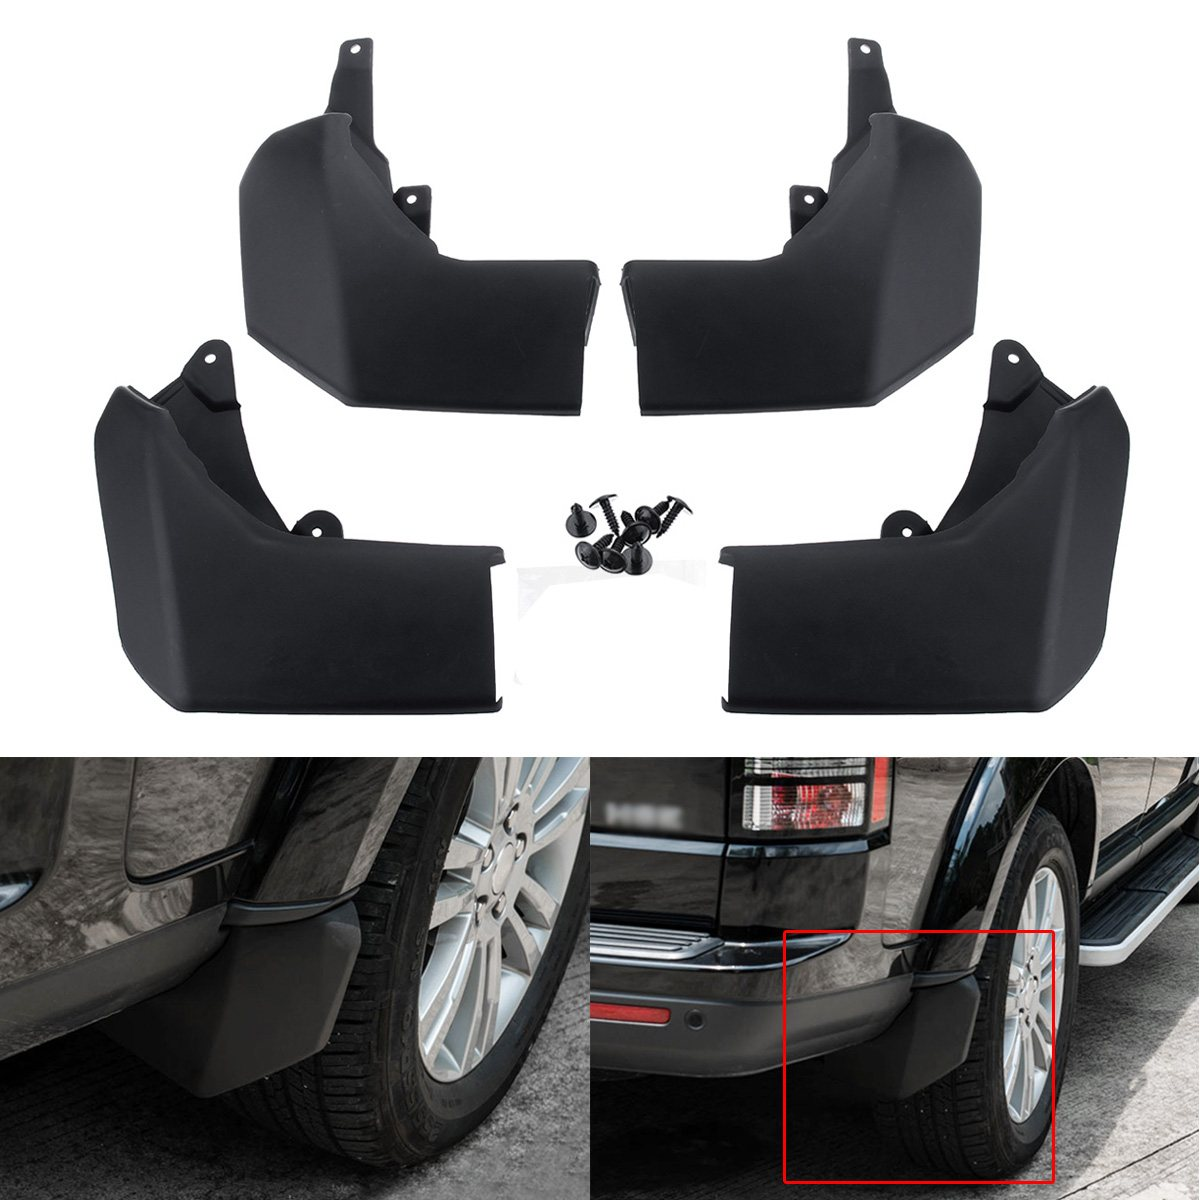 4pcs Front Rear Mud Flap Mudflap Set For Land Rover Discovery 3 4 CAS500010PCL VPLAP0017